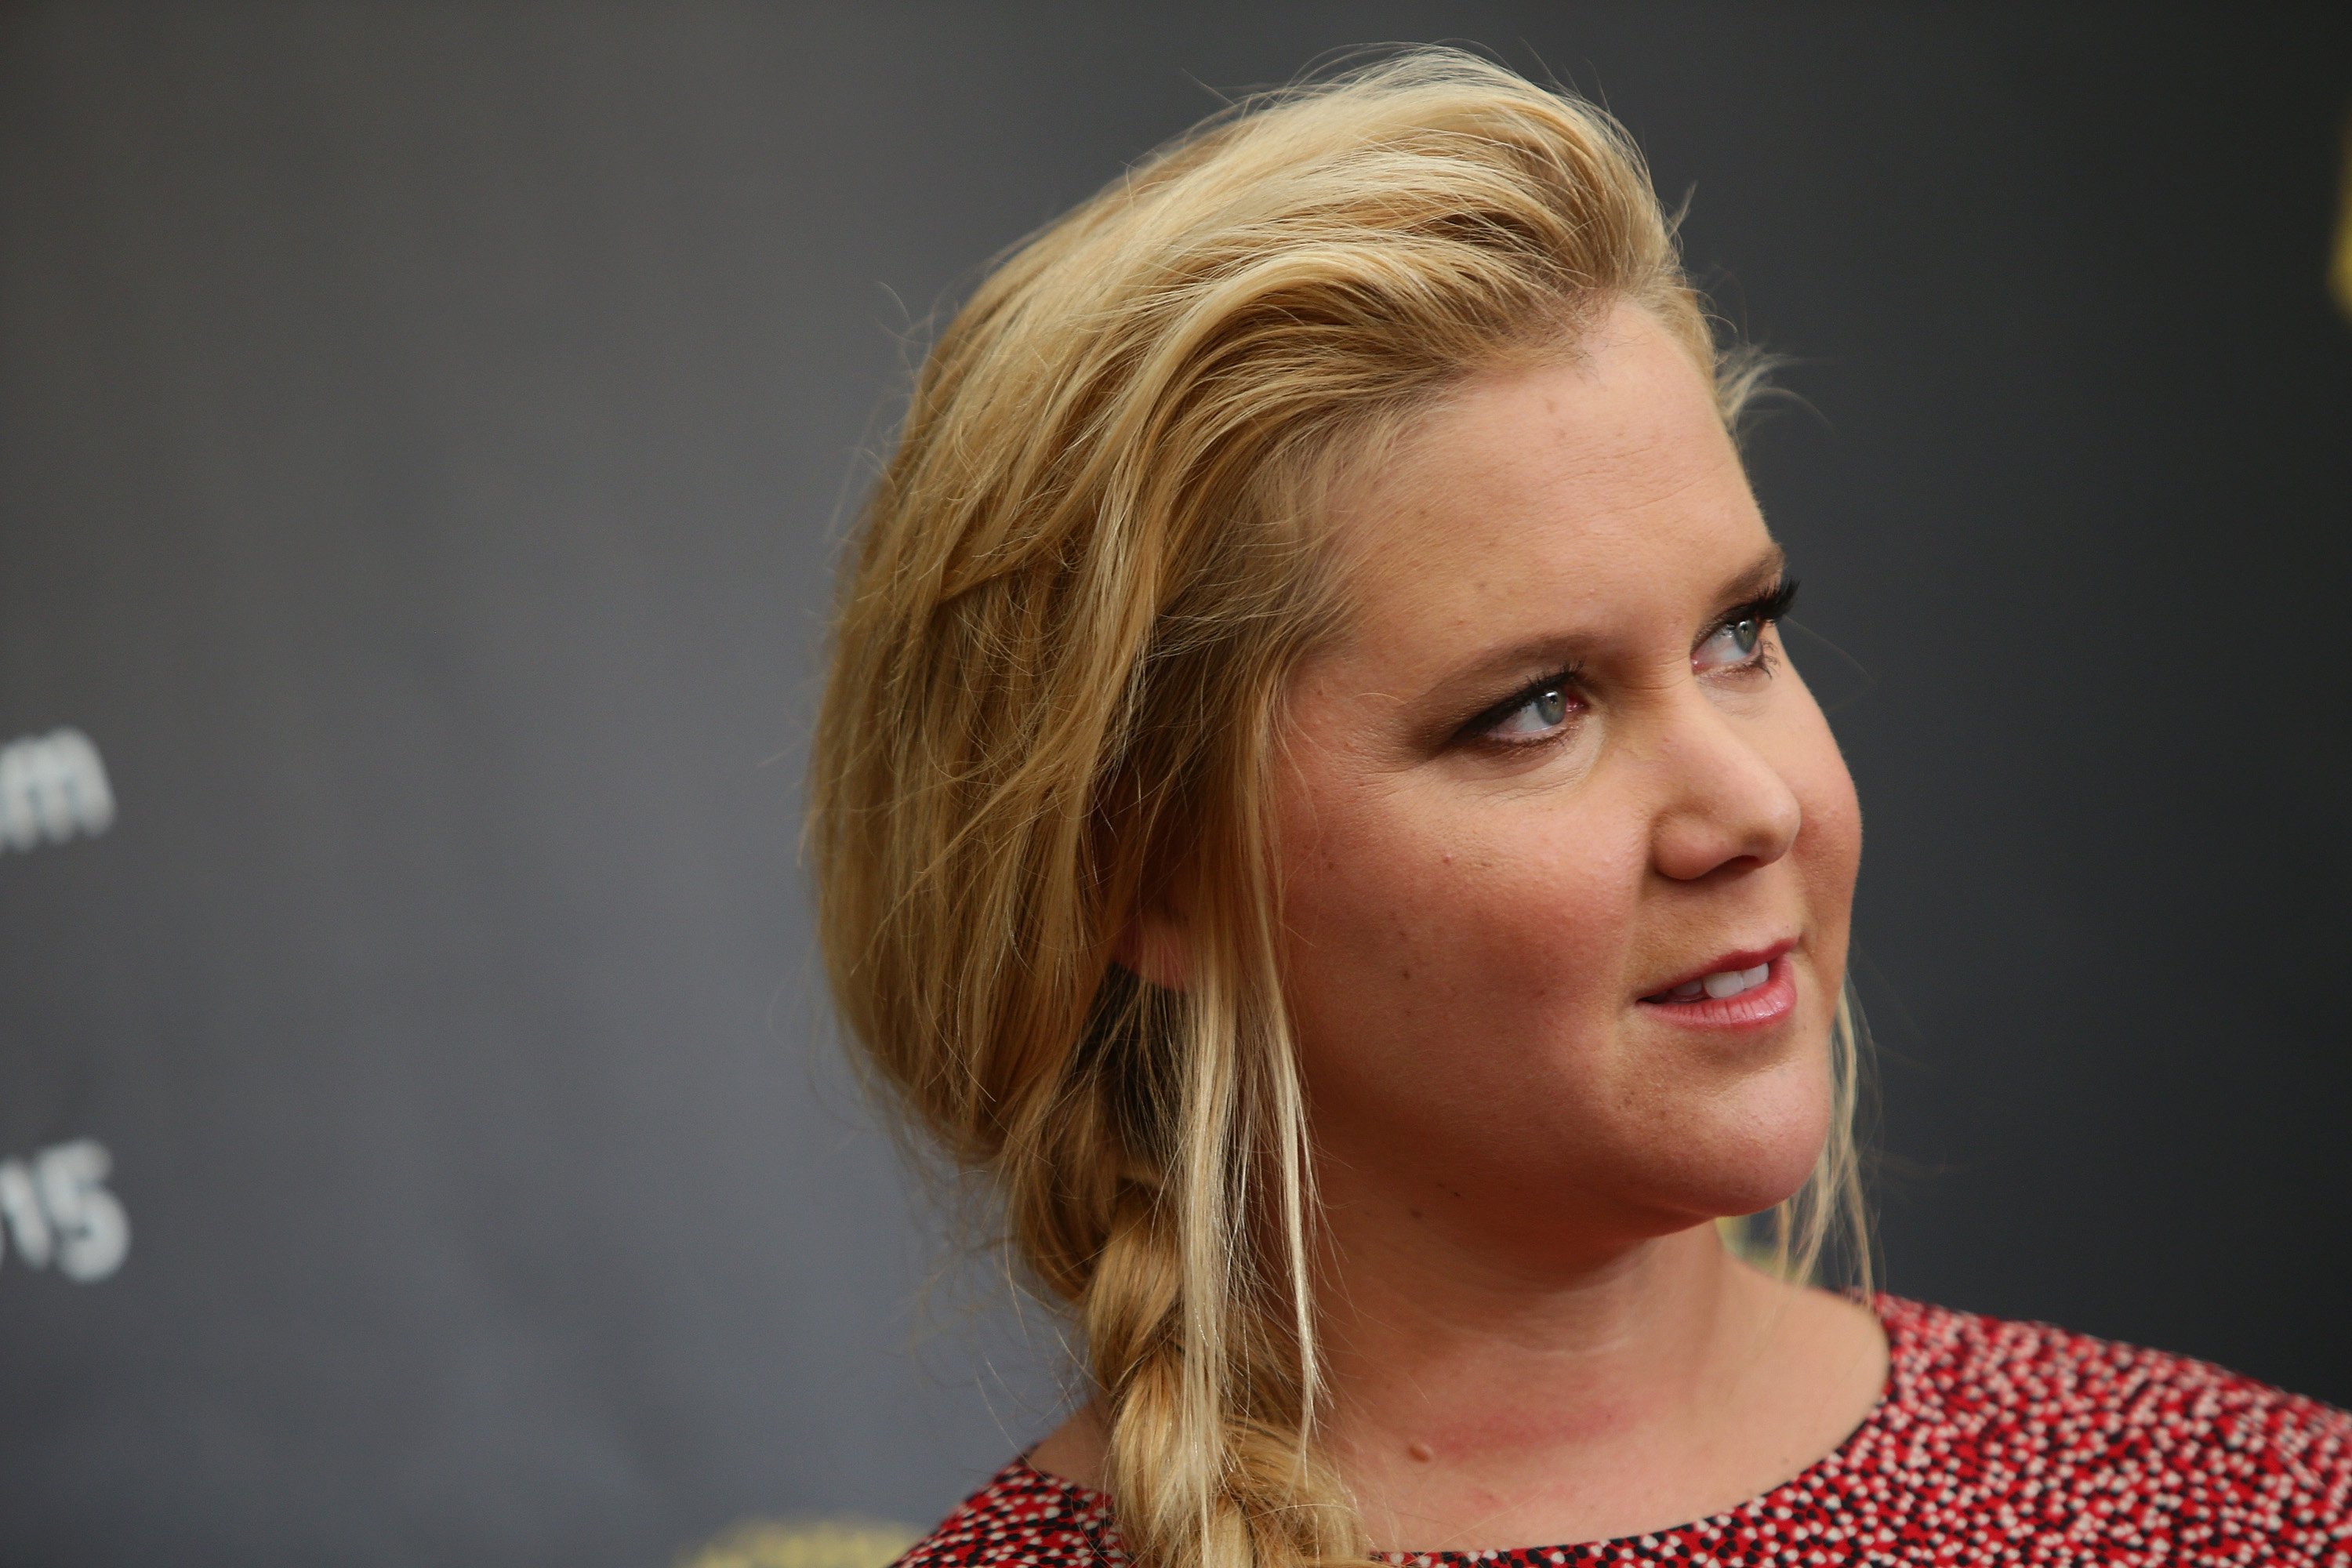 Glamour Magazine Refers to Amy Schumer as 'Plus-Size'; Schumer and Glamour Responds